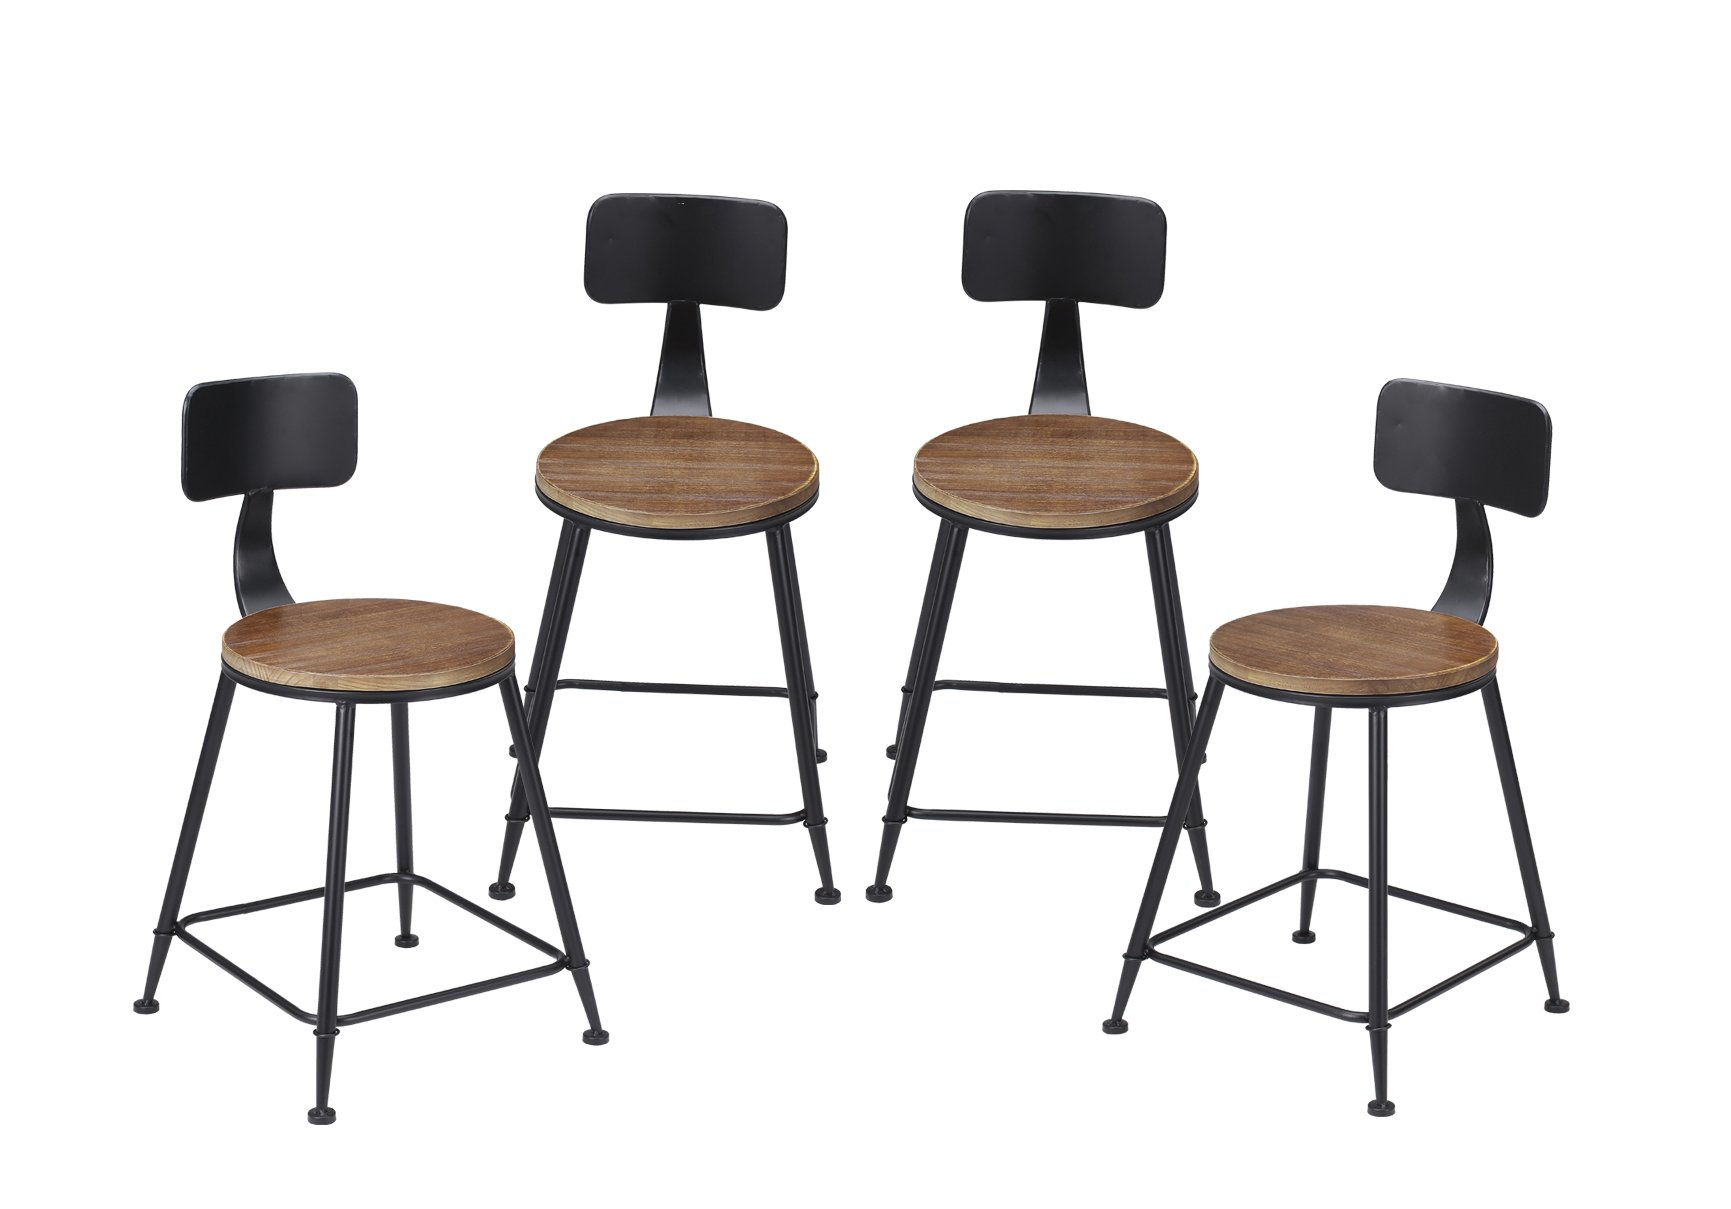 VILAVITA 4-set 19'' Round Wood Barstools Chairs with Backrest, Side Chair with Pinewood Top and Wrought Iron Frame Dining Chair, Retro Finish